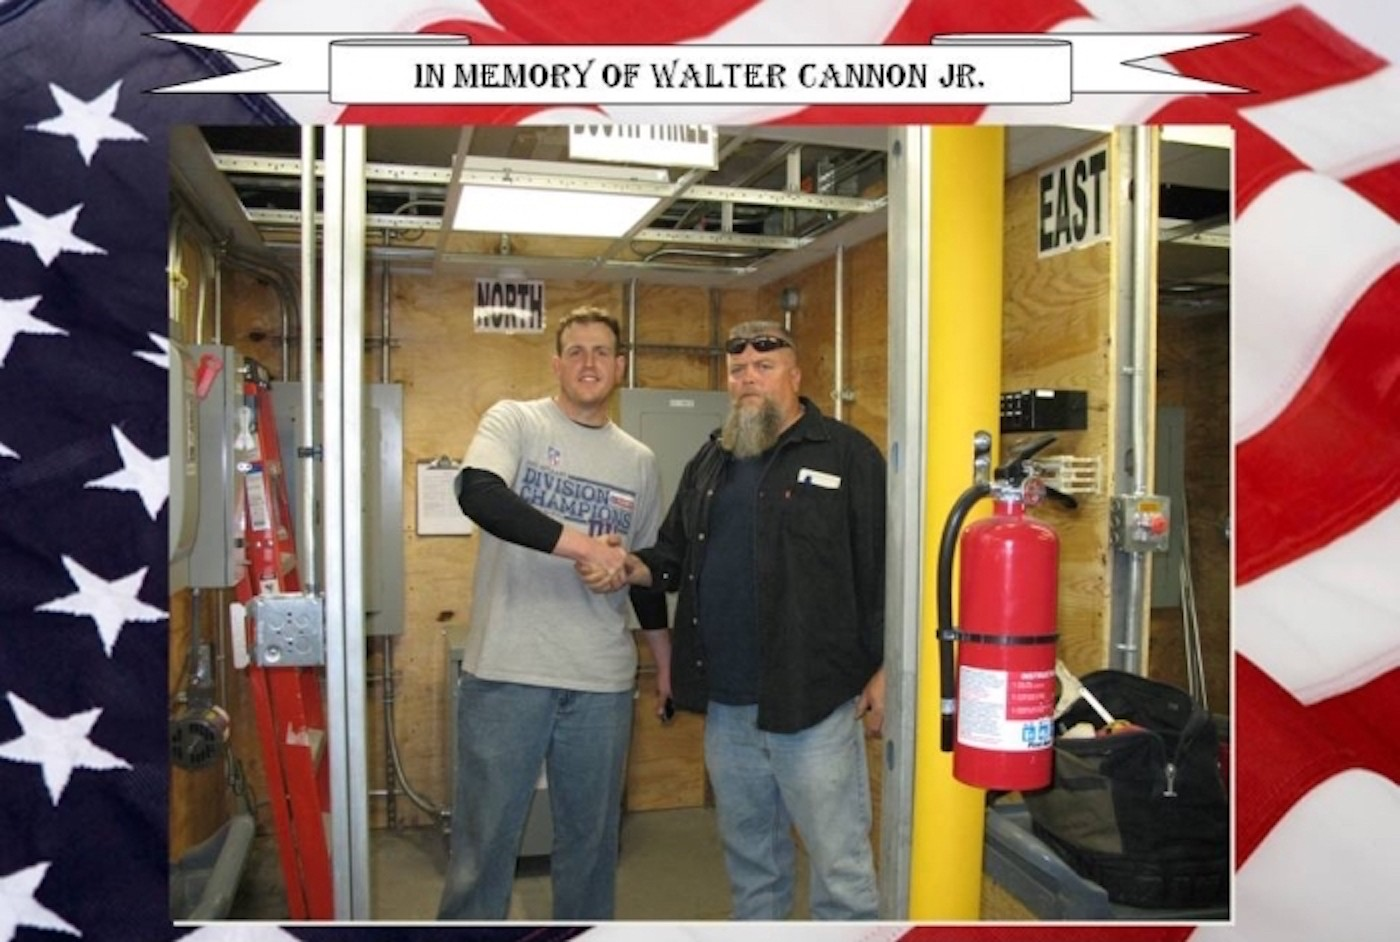 Pictured (right to left) is Boot Camp Mentor Walter Cannon Jr. and MIJ Eugene O'Sullivan. Booth #3 is dedicated to the life of Brother Walter Cannon jr. where his name and picture will remain forever. We will never forget.